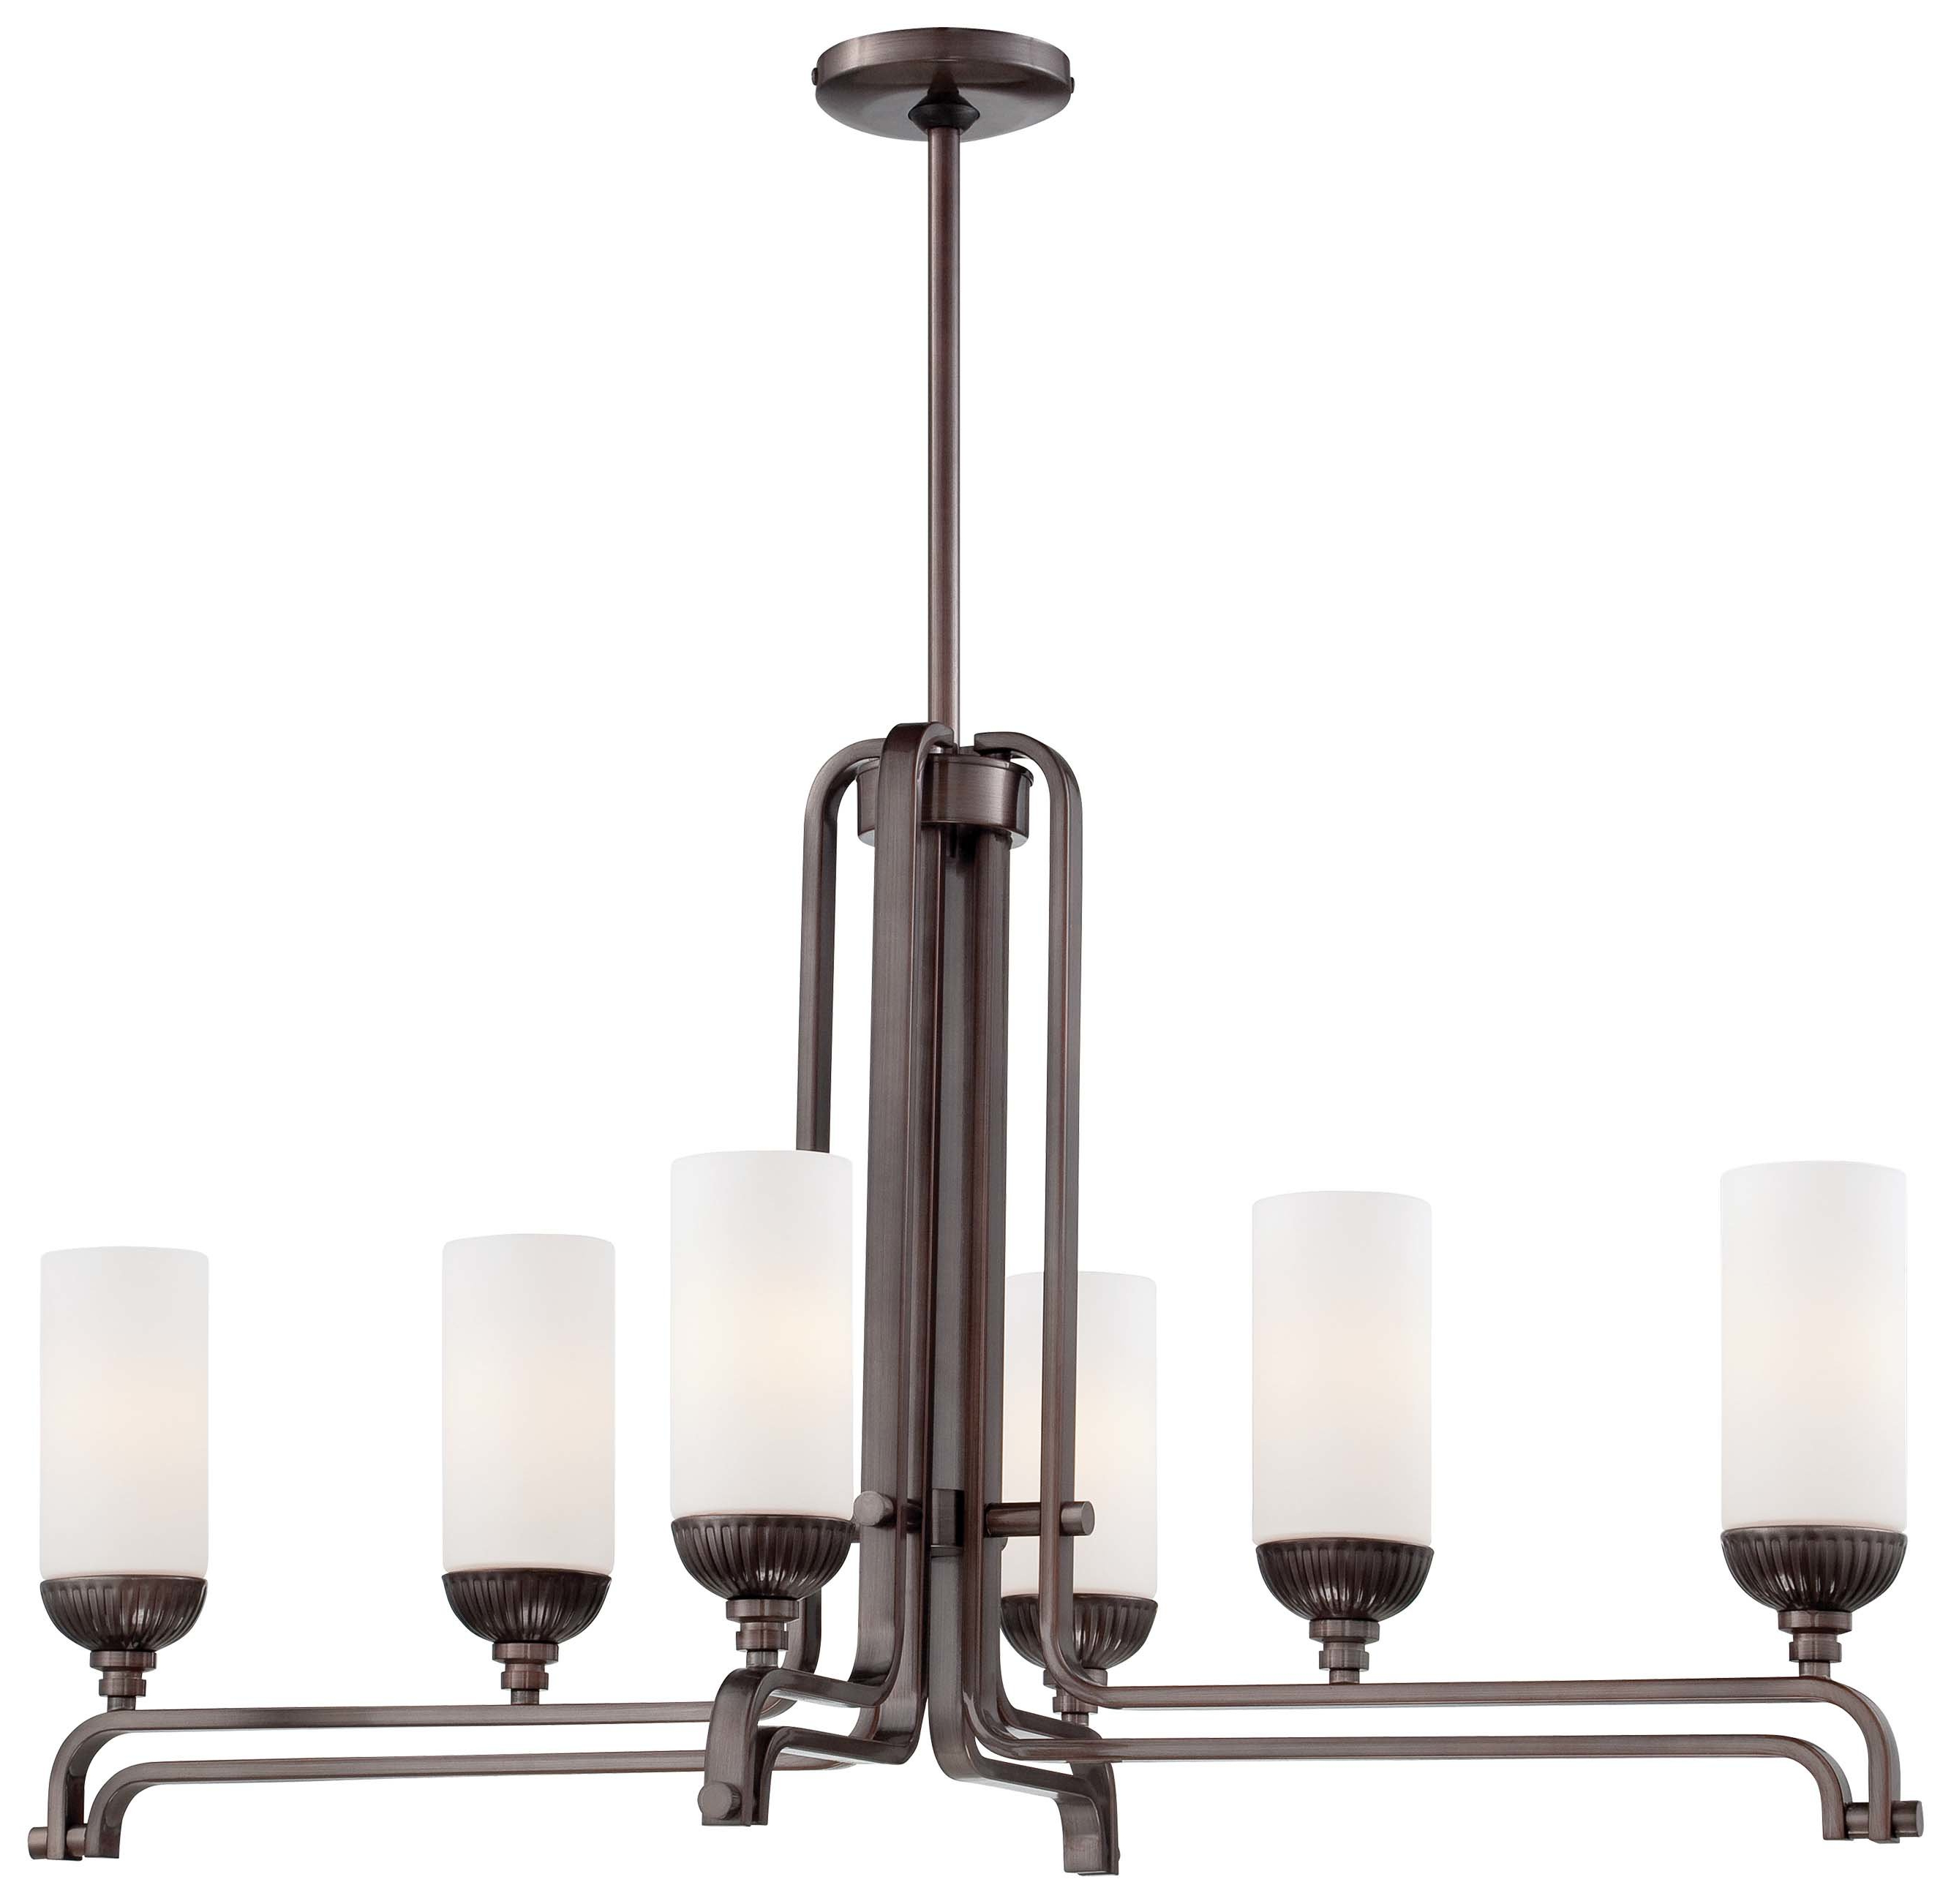 Widely Used Akash Industrial Vintage 1 Light Geometric Pendants For Industrial Kitchen Lighting You'll Love In (View 19 of 20)